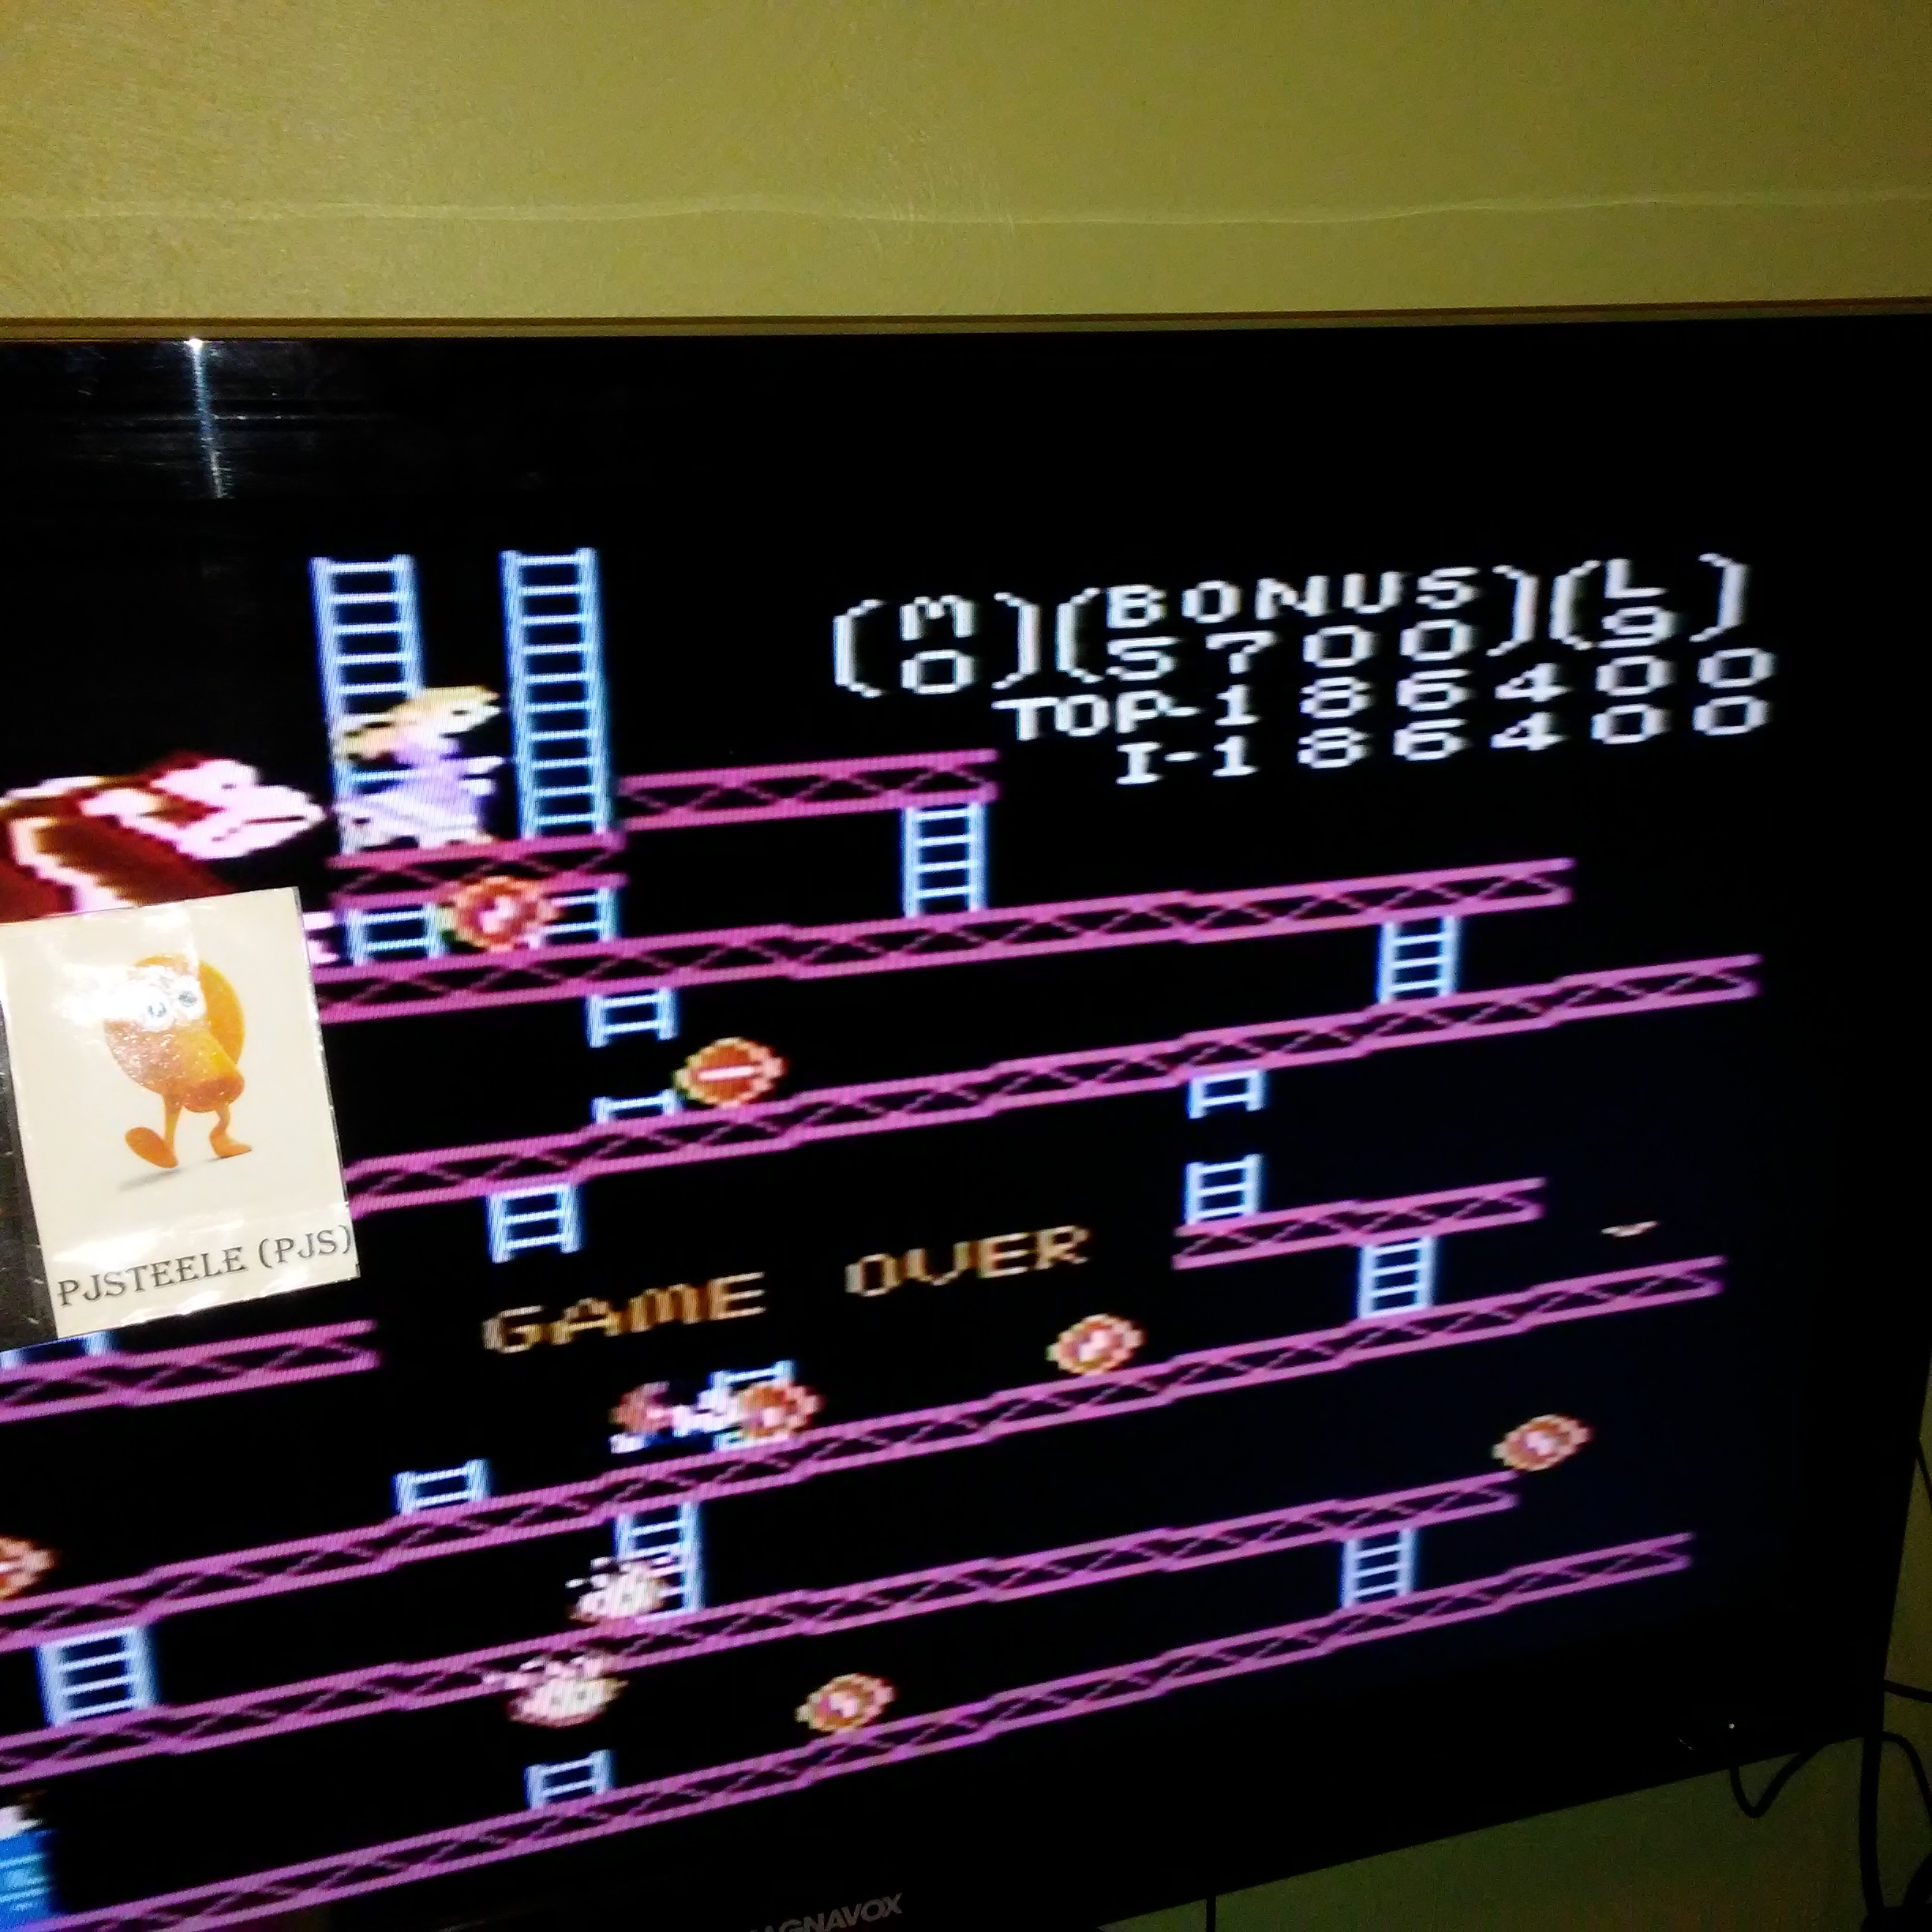 Pjsteele: Donkey Kong: Expert (Atari 7800) 186,400 points on 2018-01-09 18:07:30